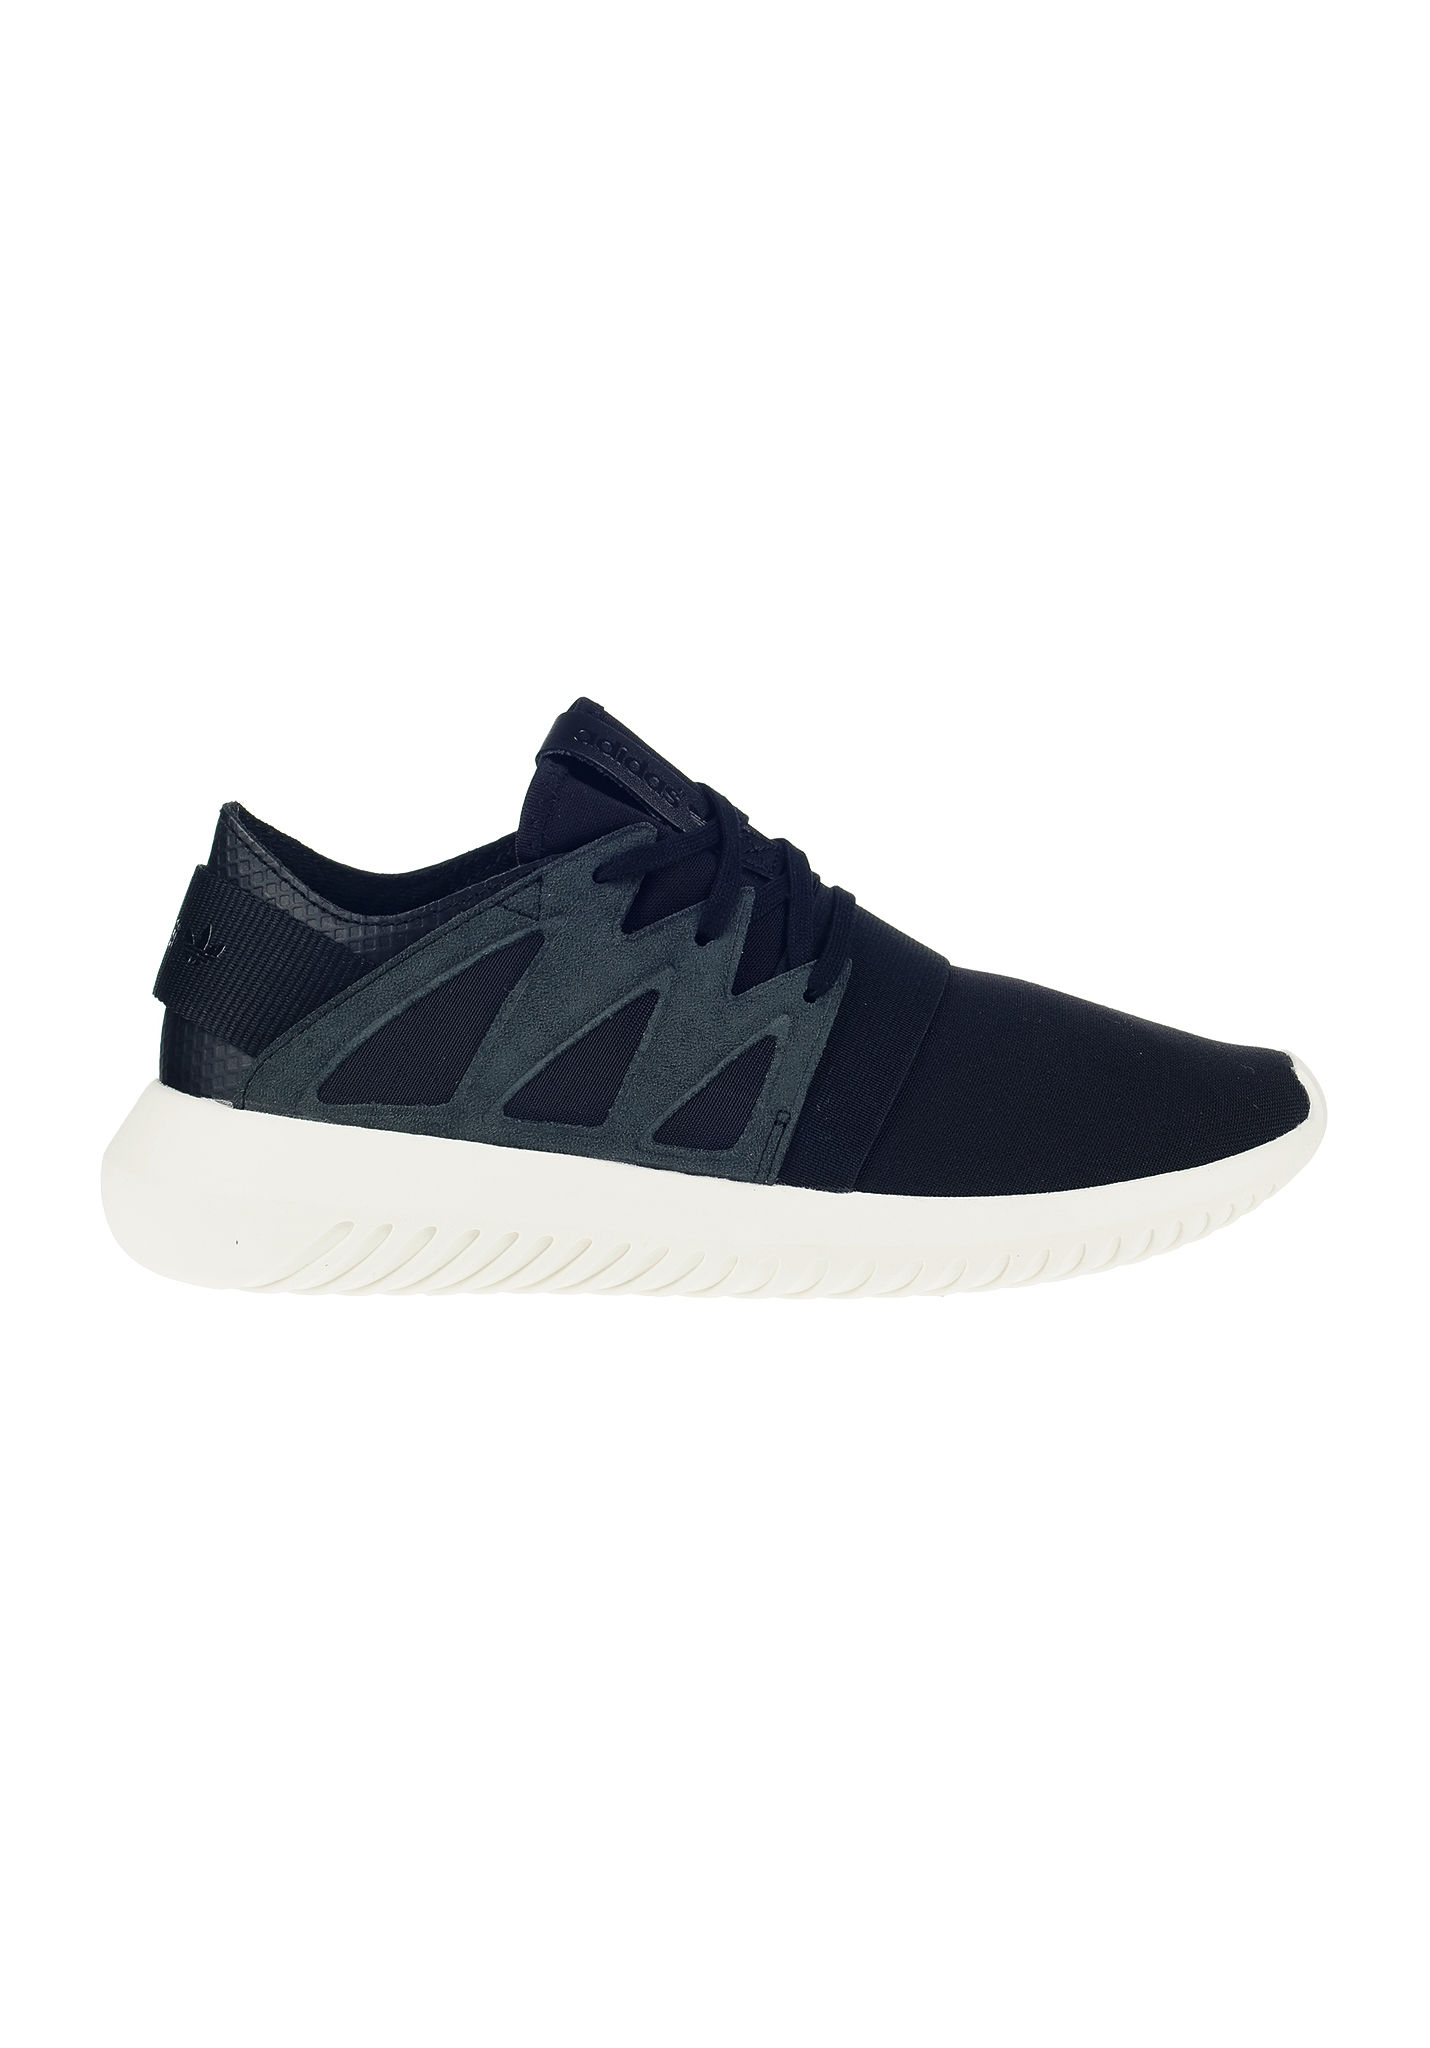 Adidas Originals Tubular Nova PK Black Sneakers S 80110